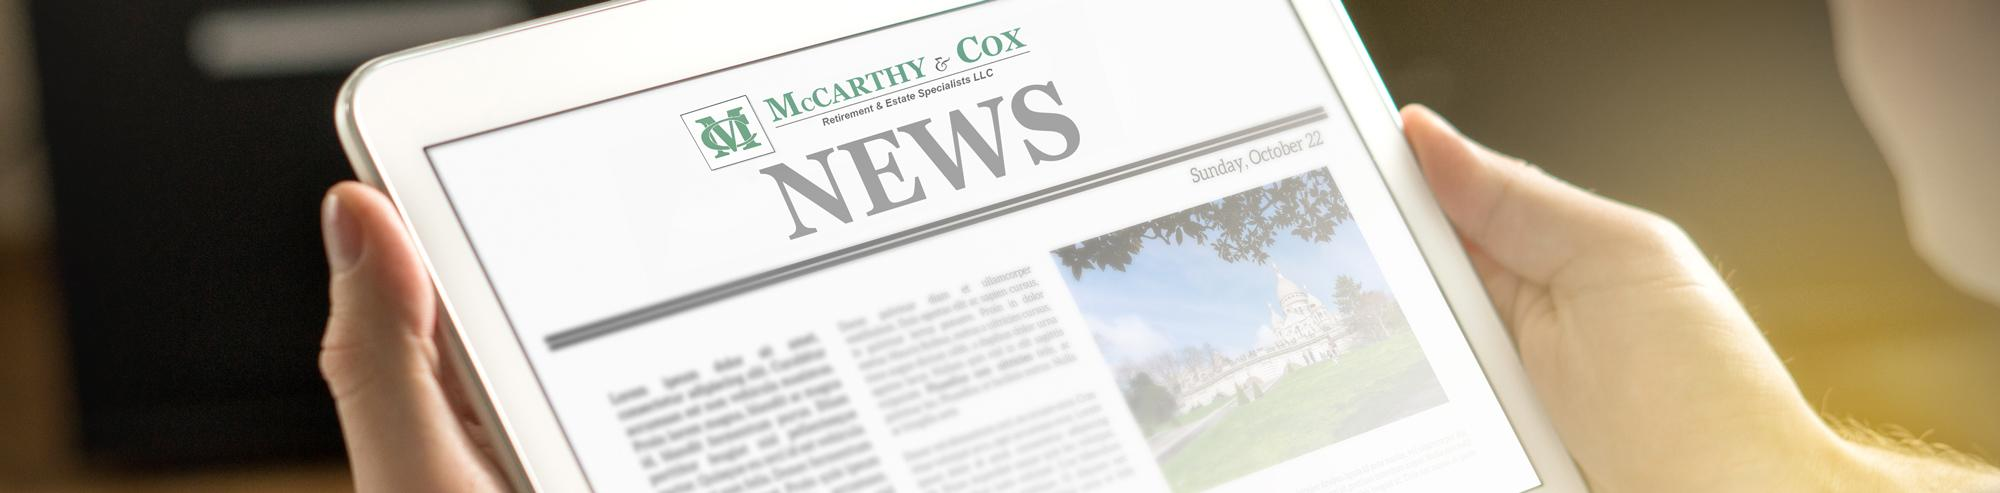 McCarthy and Cox News